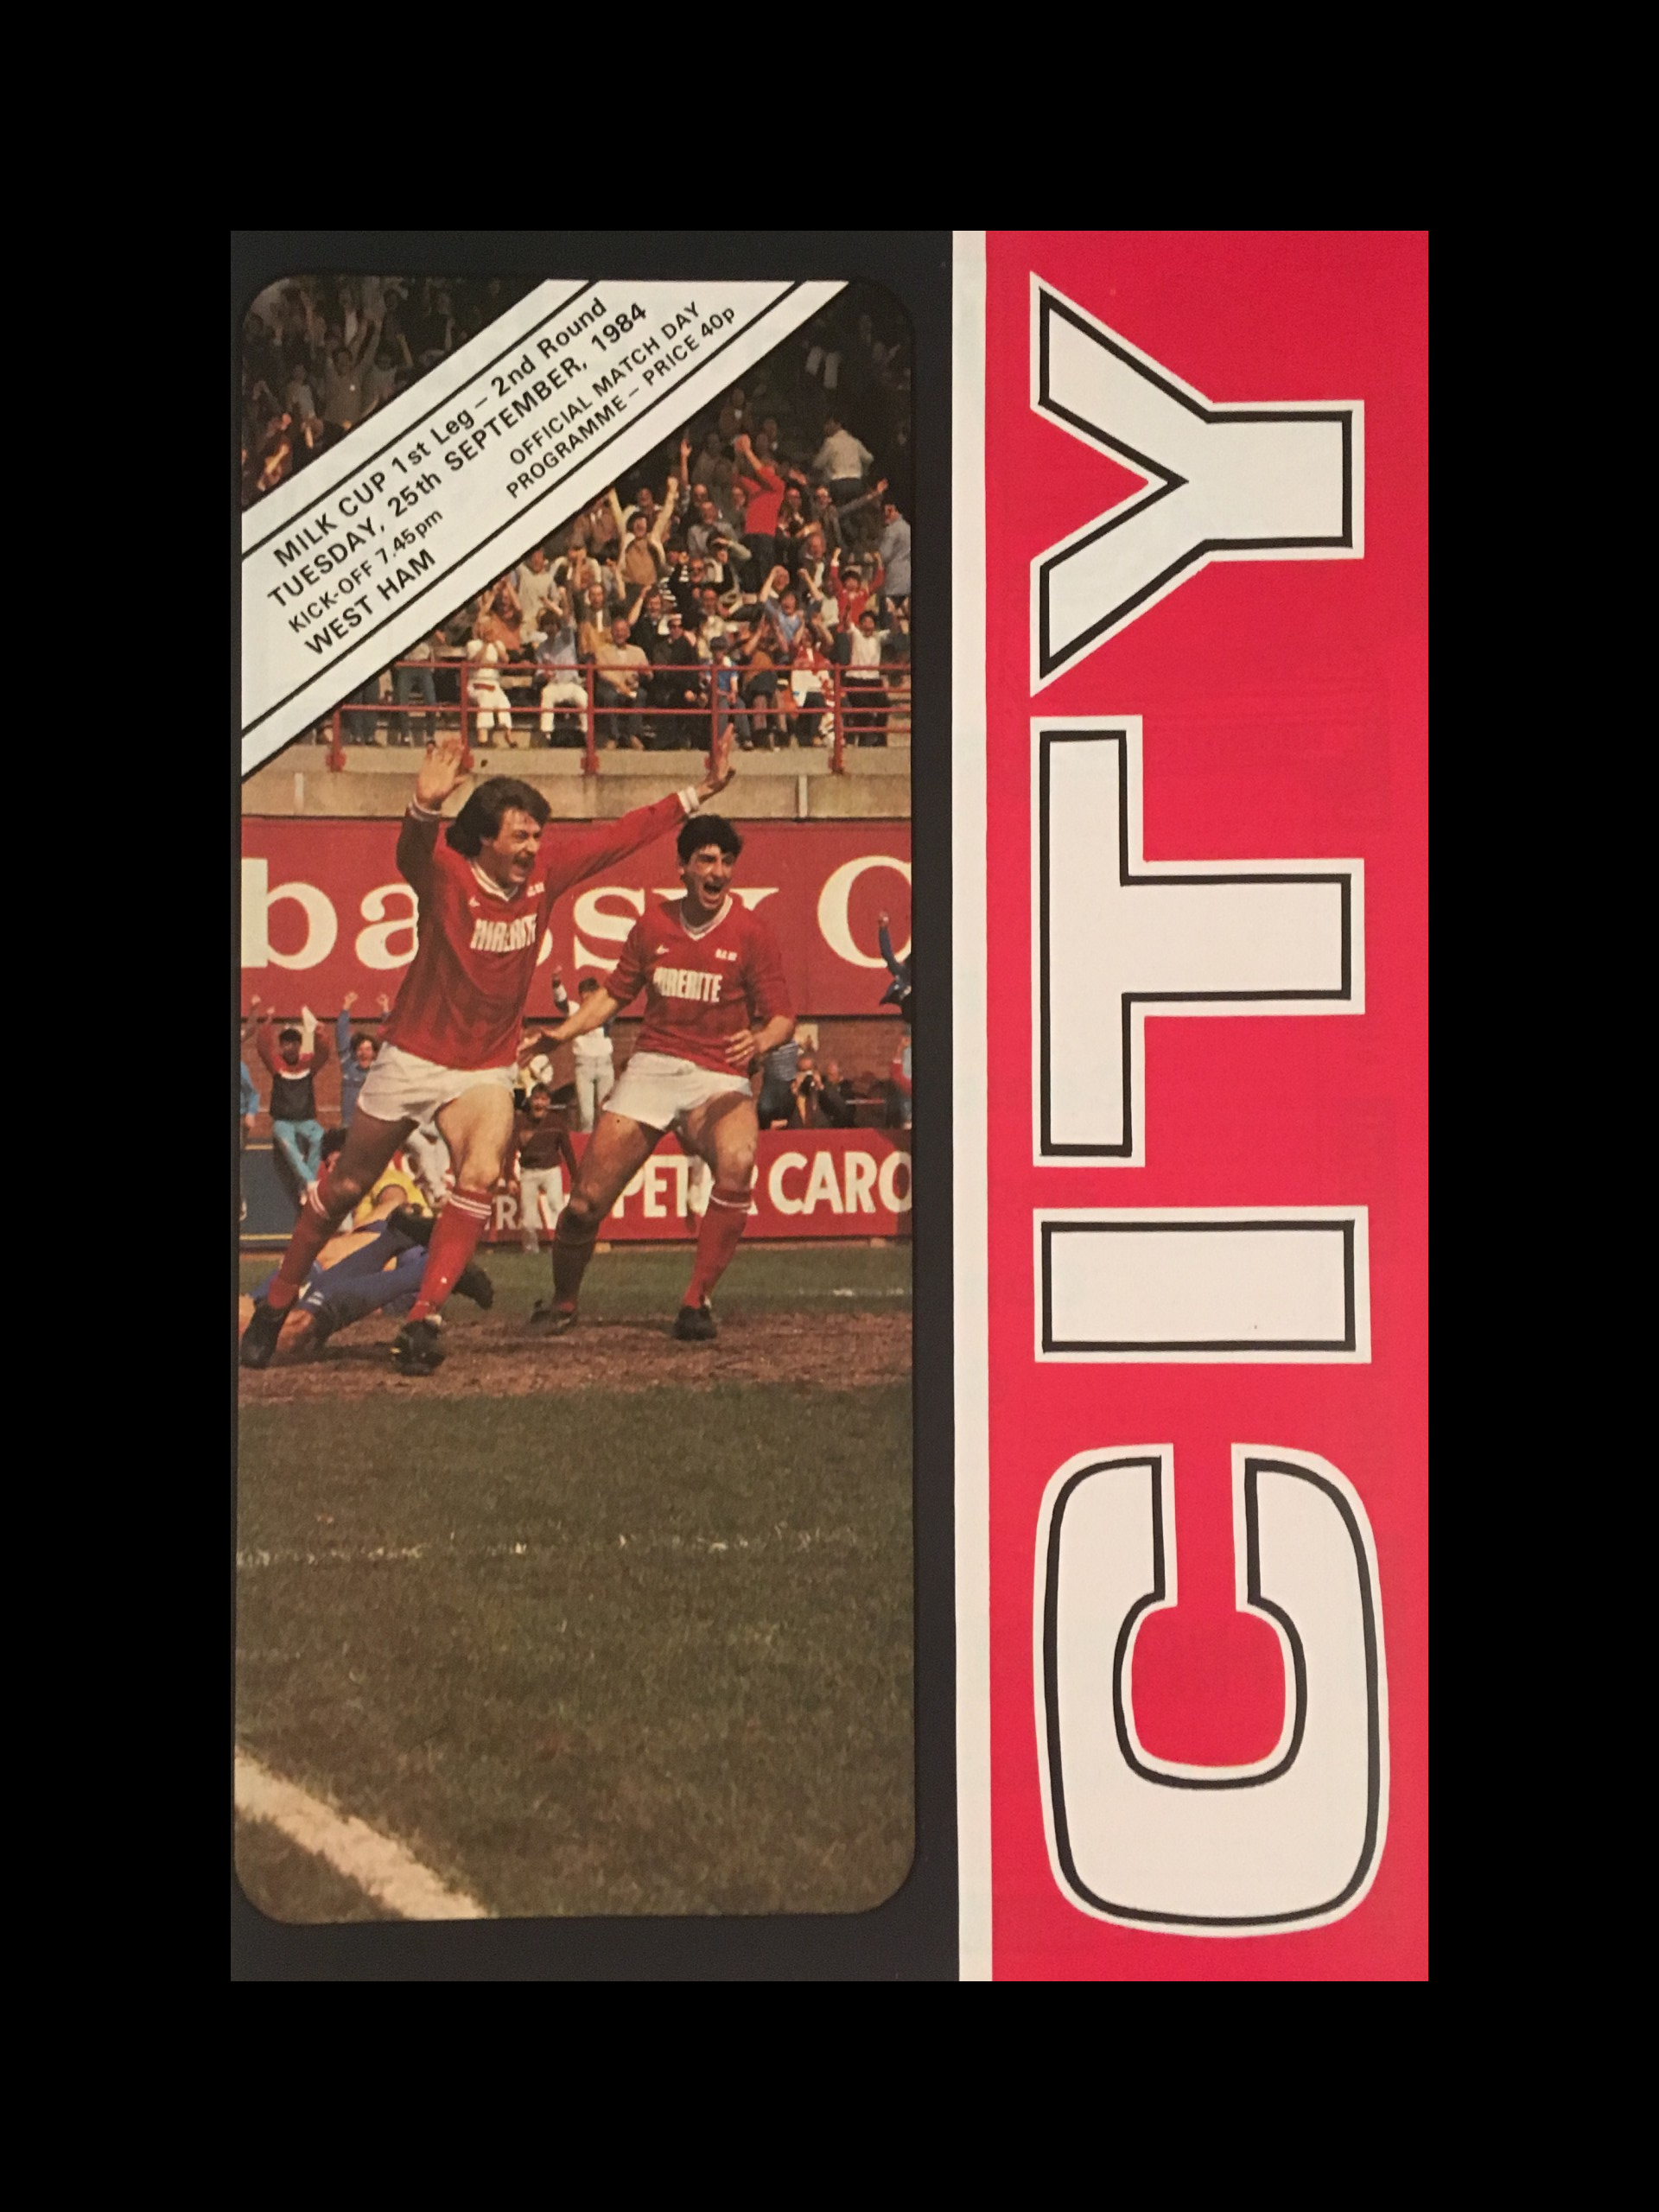 Bristol City v West Ham United 25-09-84 Programme